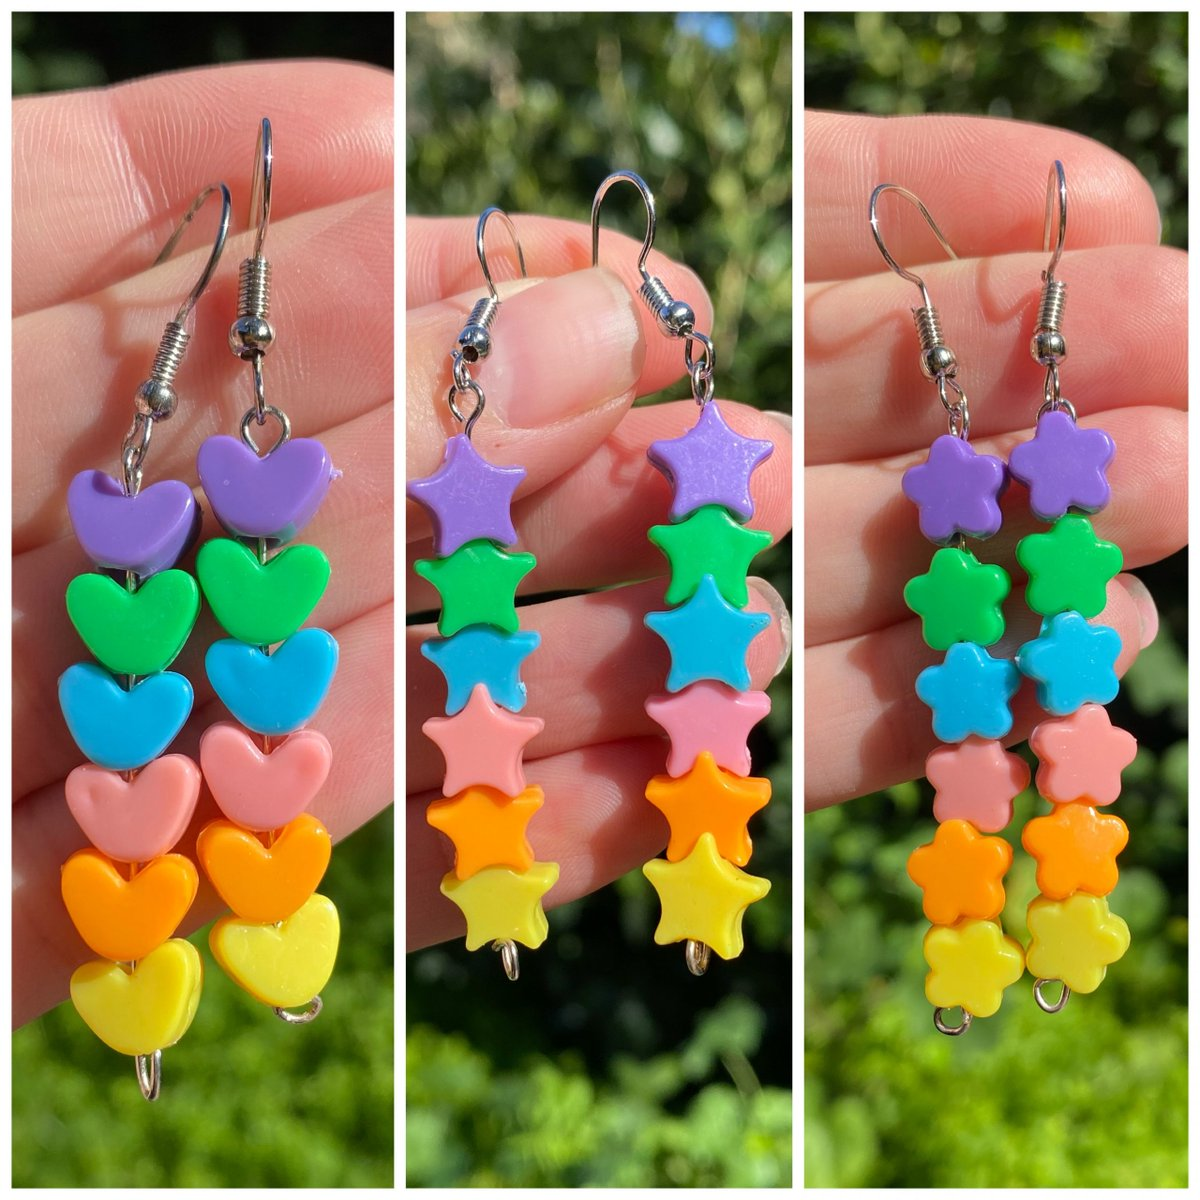 Rainbow Bead Drop Earrings are available in 3 shapes! #smallbusiness #shopsmall #jewelry #handmadejewelry #handmade #womanowned #shop #forsale #weirdearrings #lesbianearrings #makers